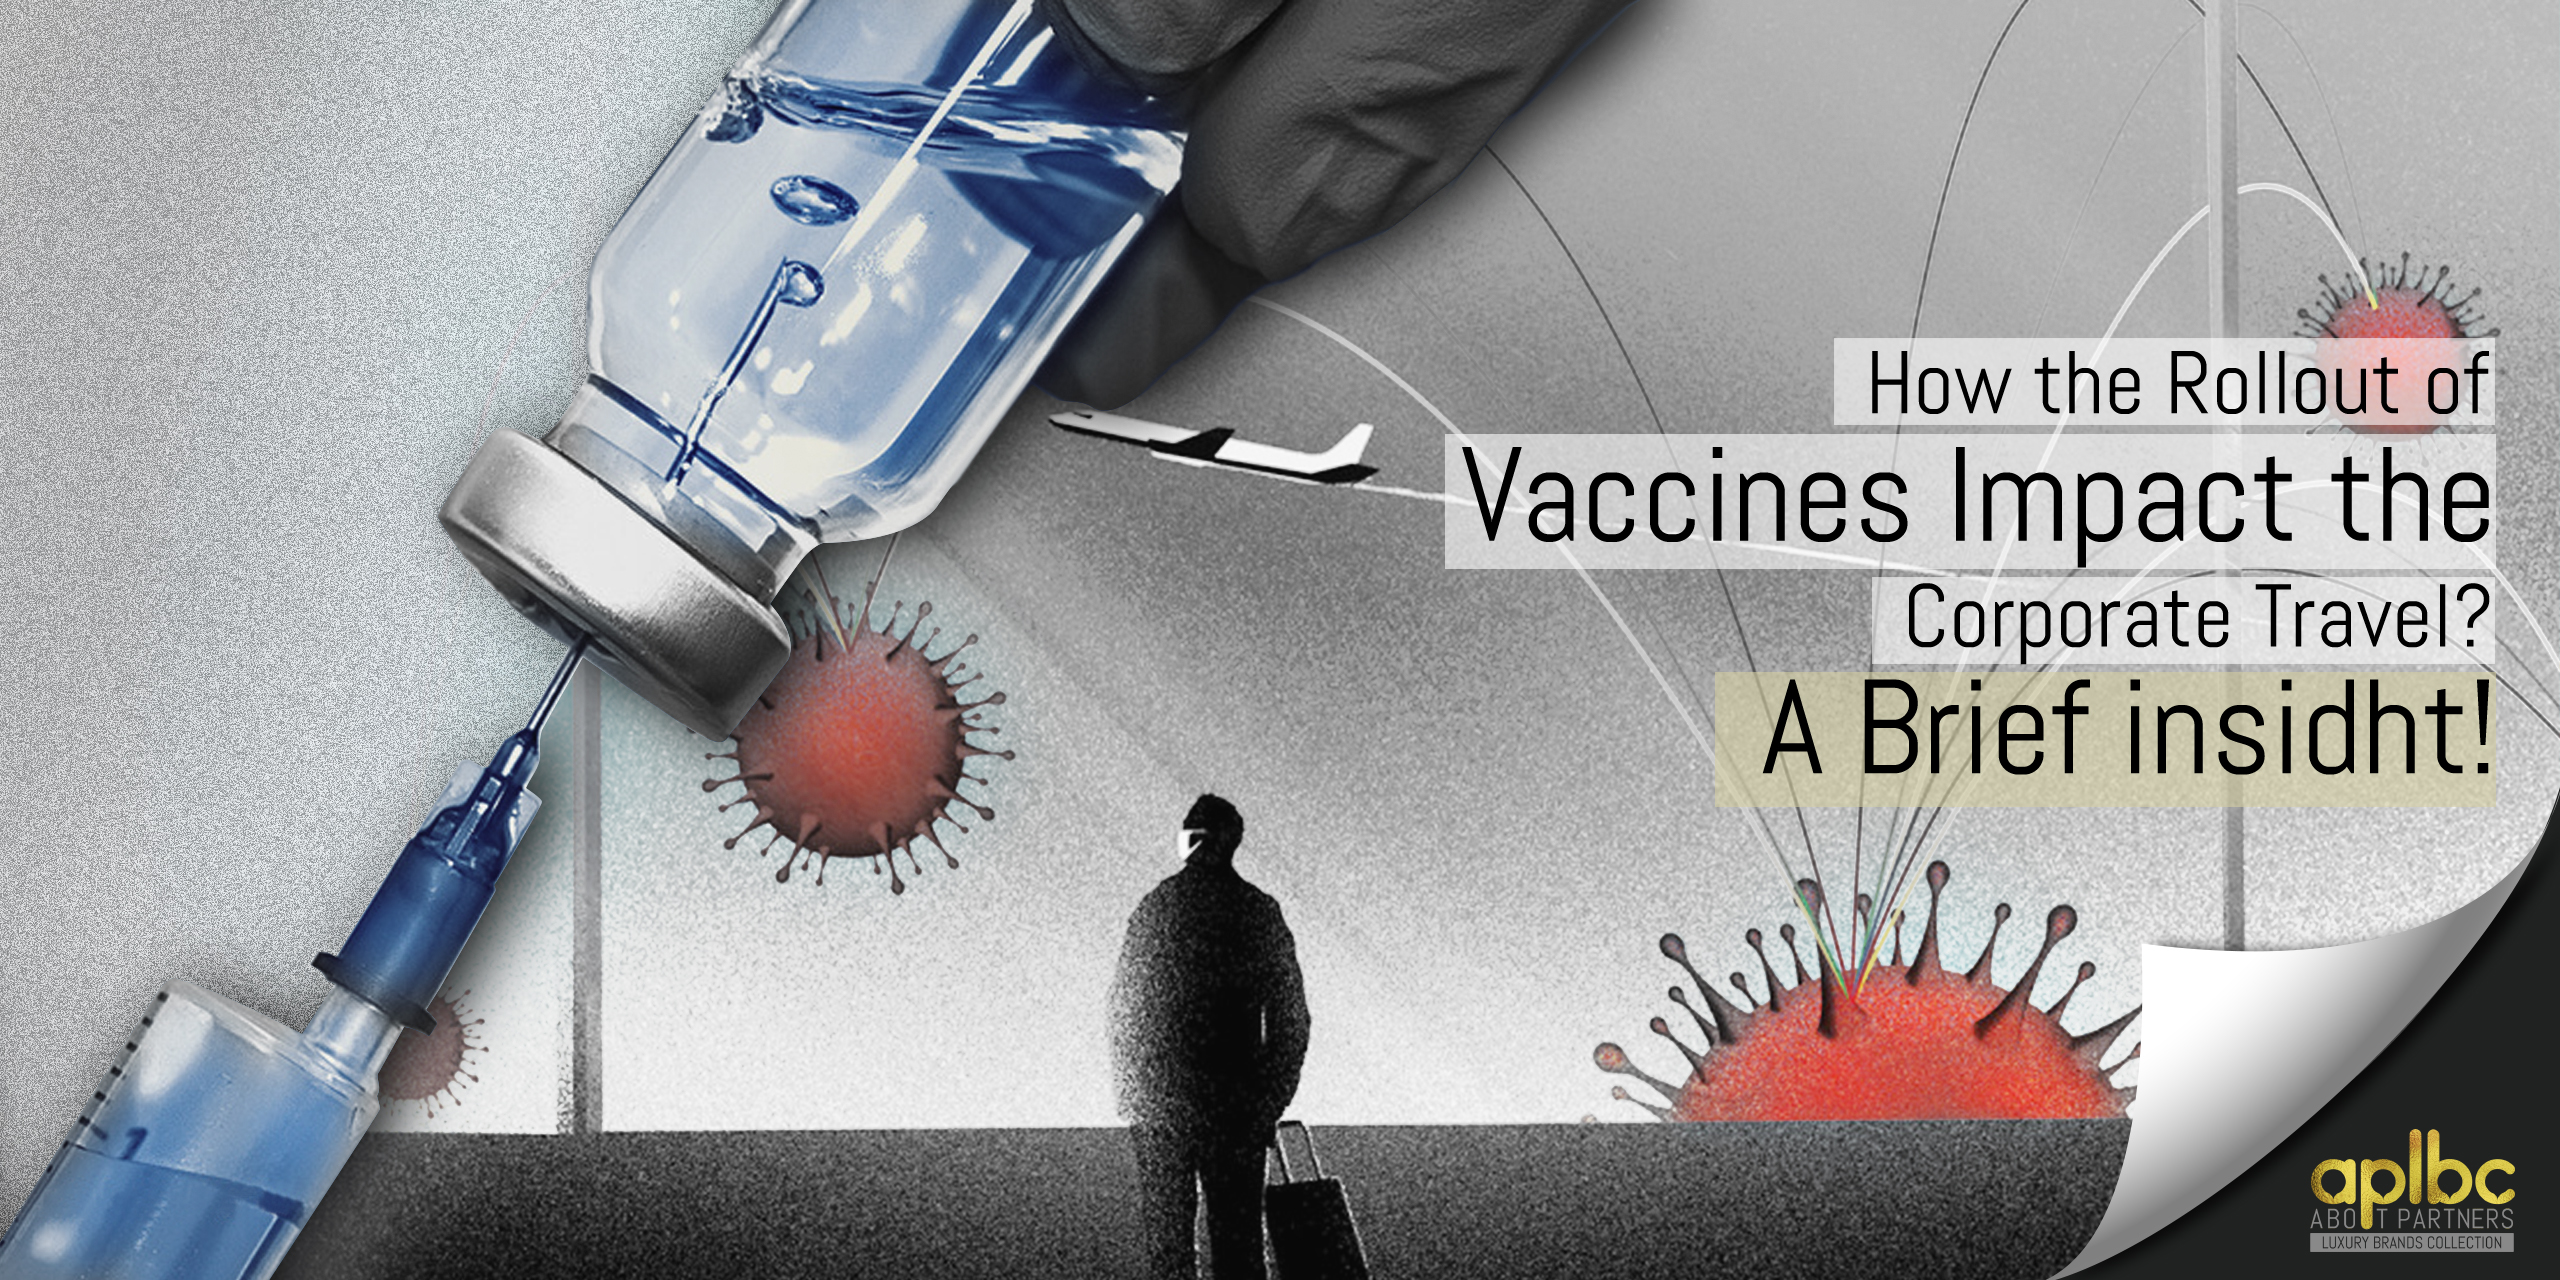 How the Rollout of Vaccines Impact the Corporate Travel? A Brief insight